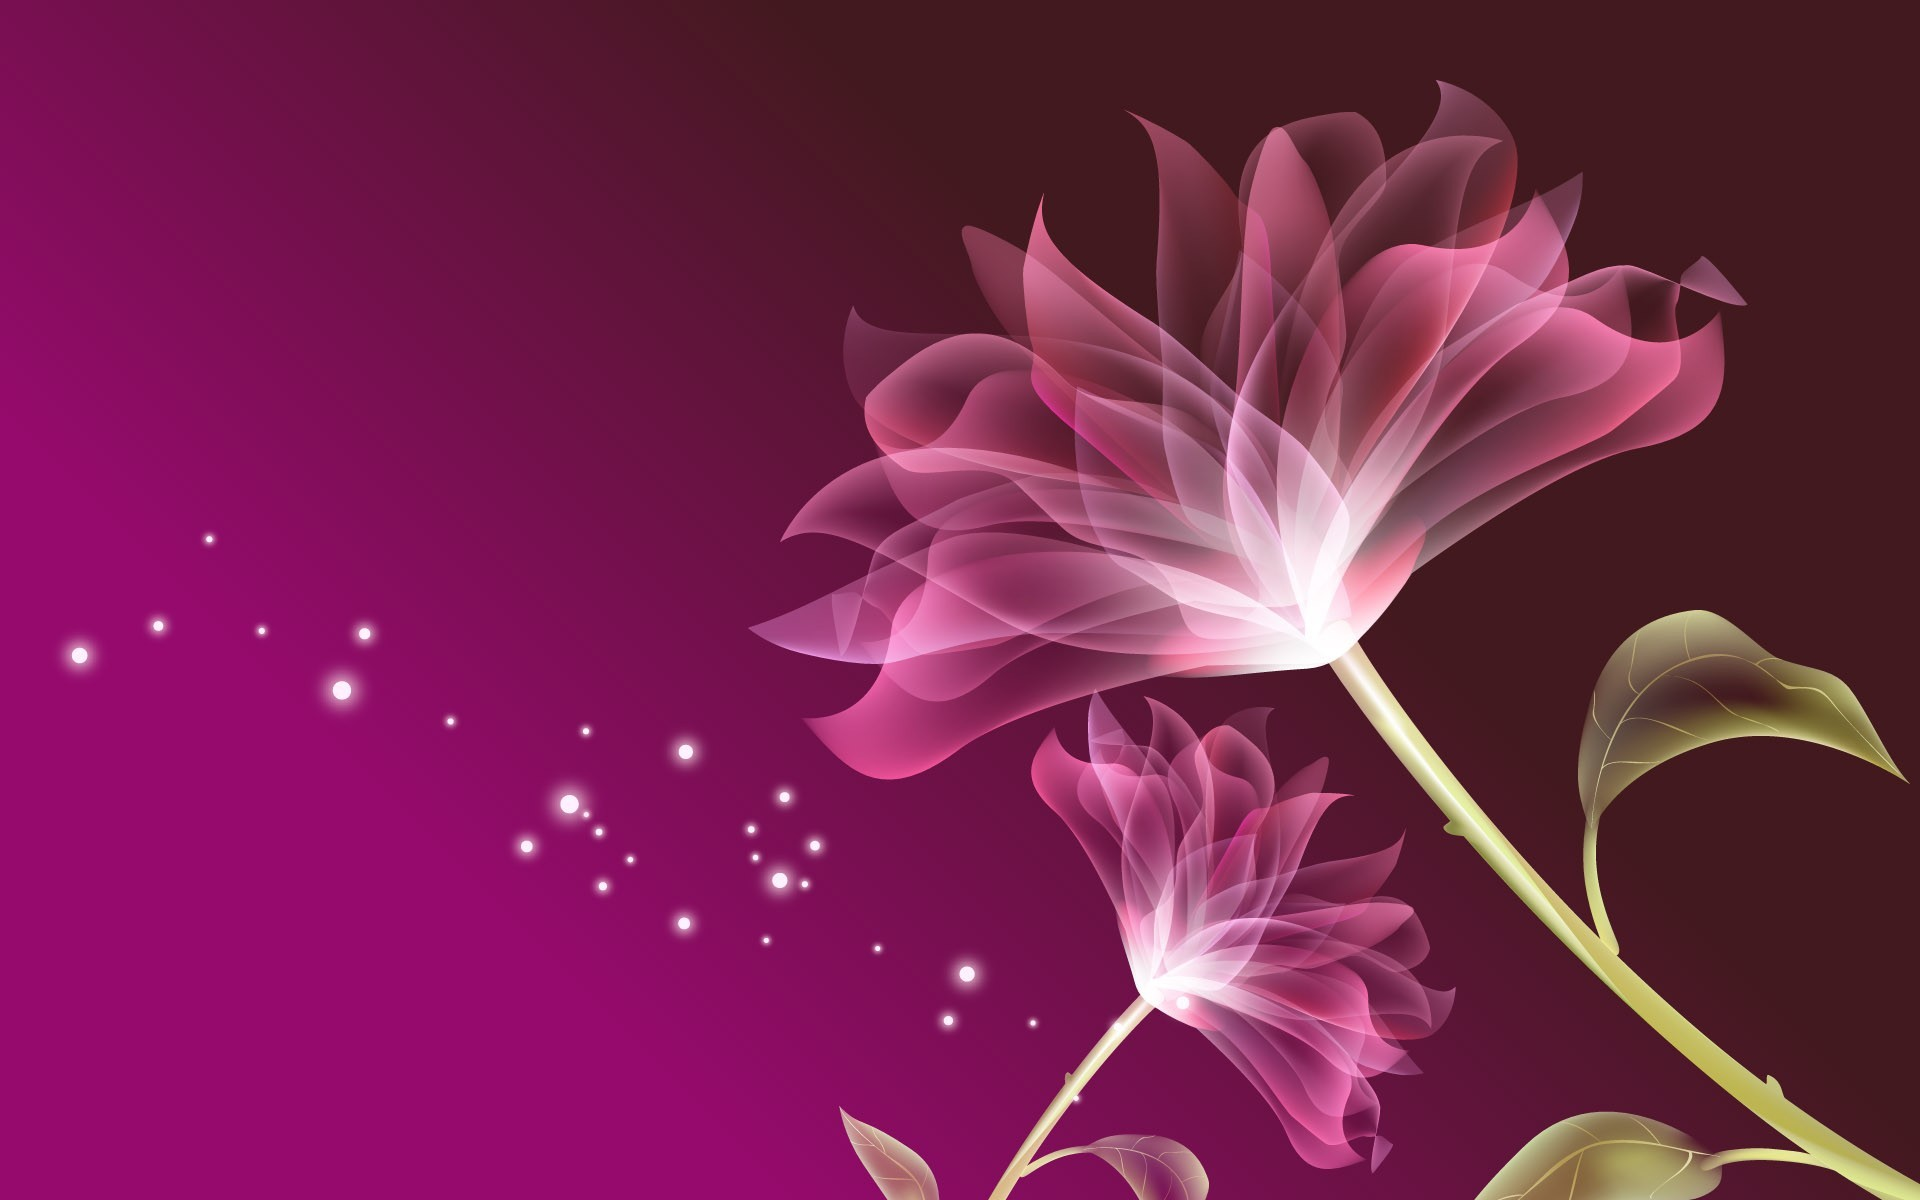 Cool Flower Backgrounds 56 Images